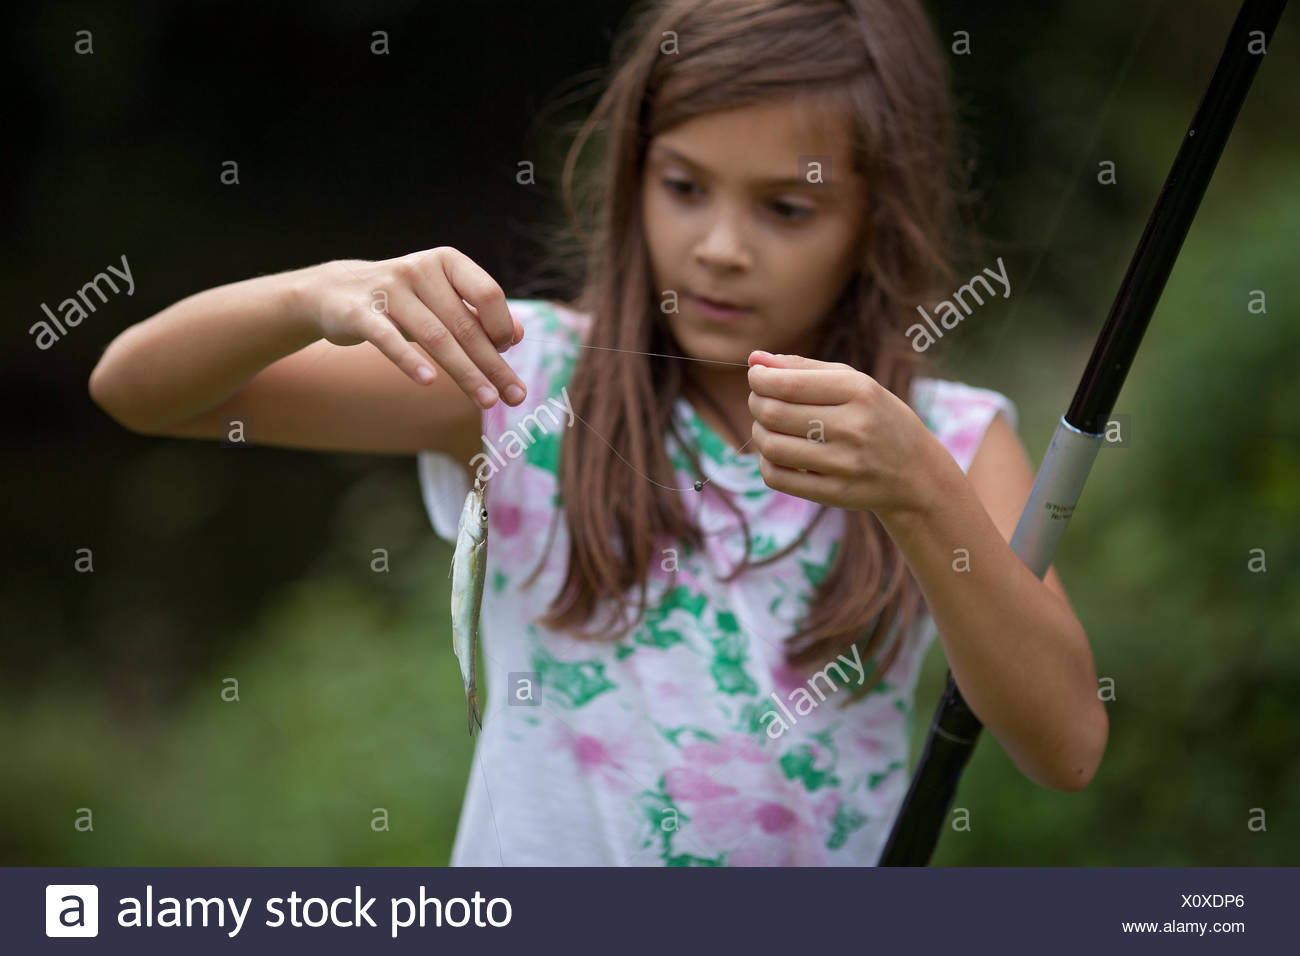 Girl with her fish catch - Stock Image